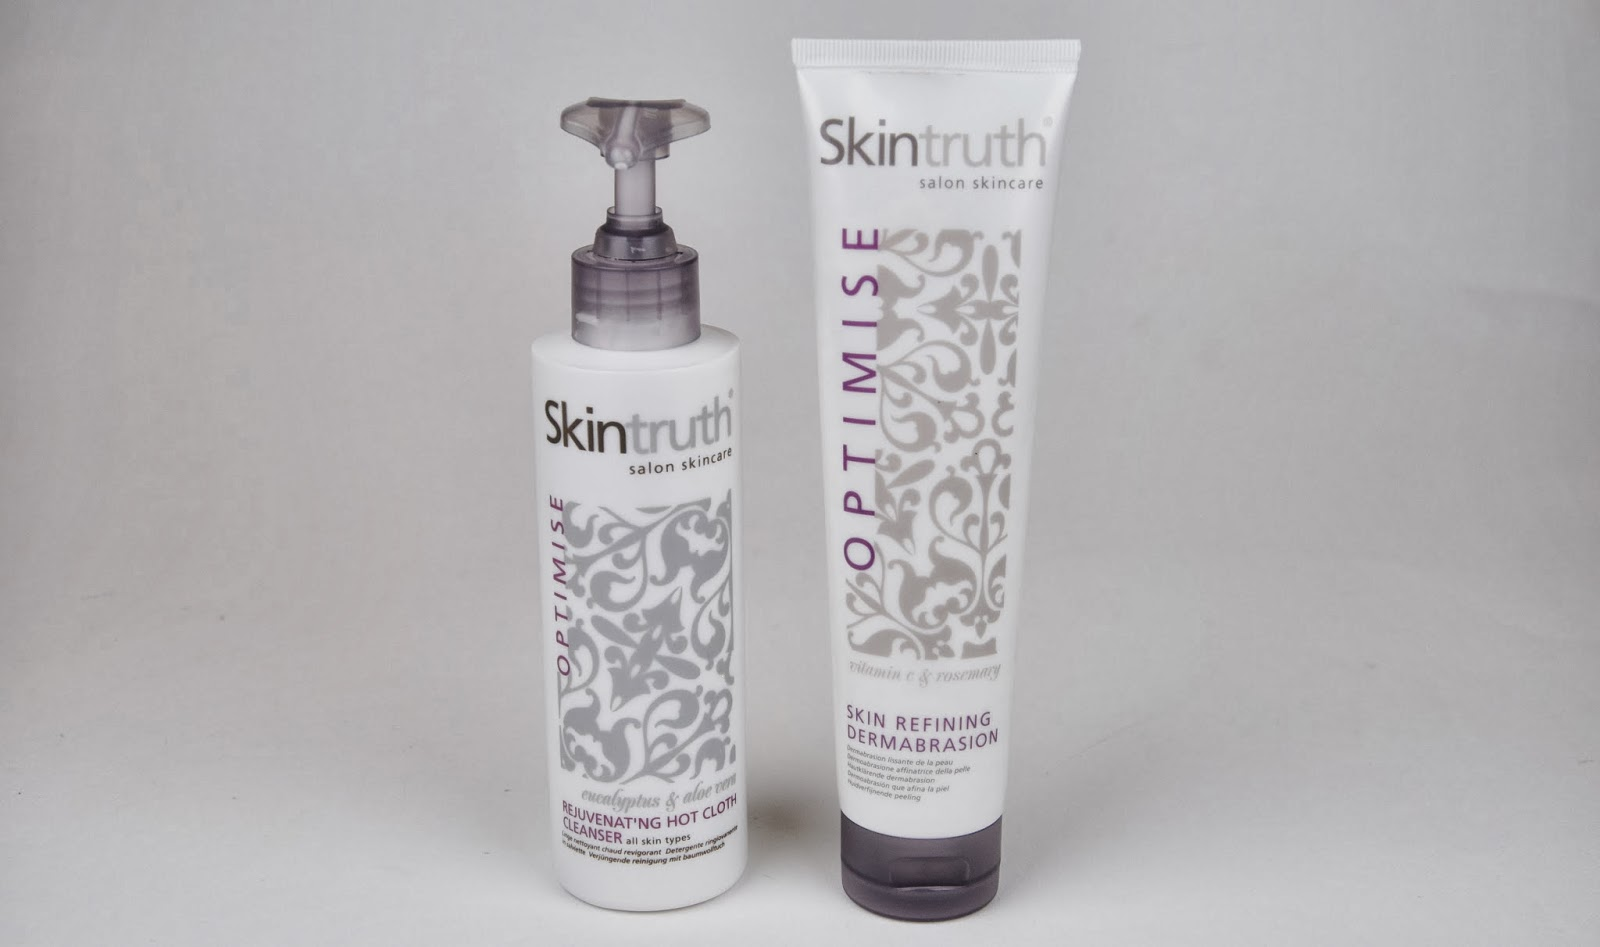 skintruth rejuvenating hot cloth cleanser review skin refining dermabration